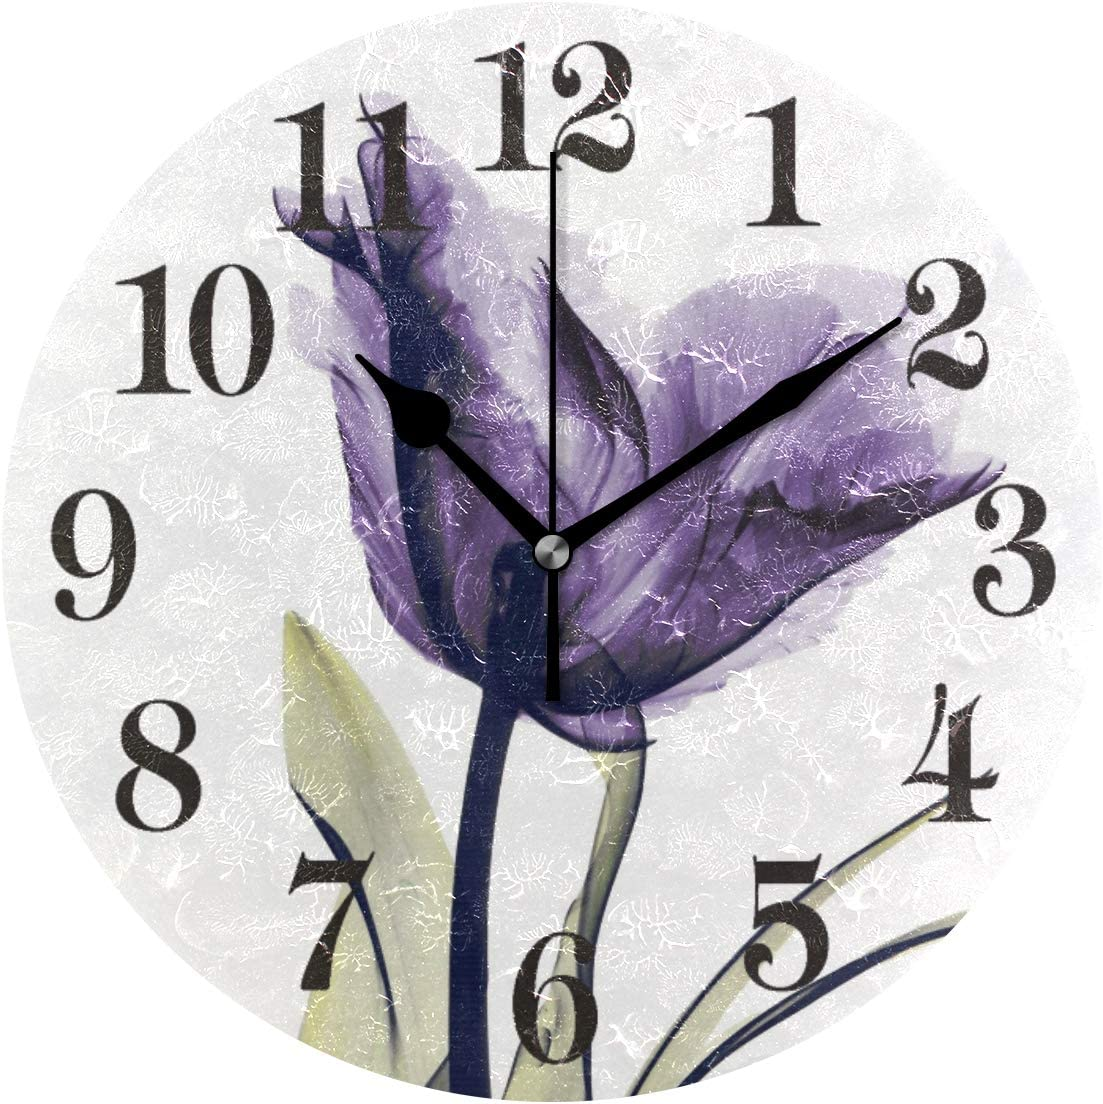 10 Inch Round Wooden Wall Clock, Battery Operated, Purple Flowers Floral Wall Decor for The Kitchen Living Room Bedroom and Office